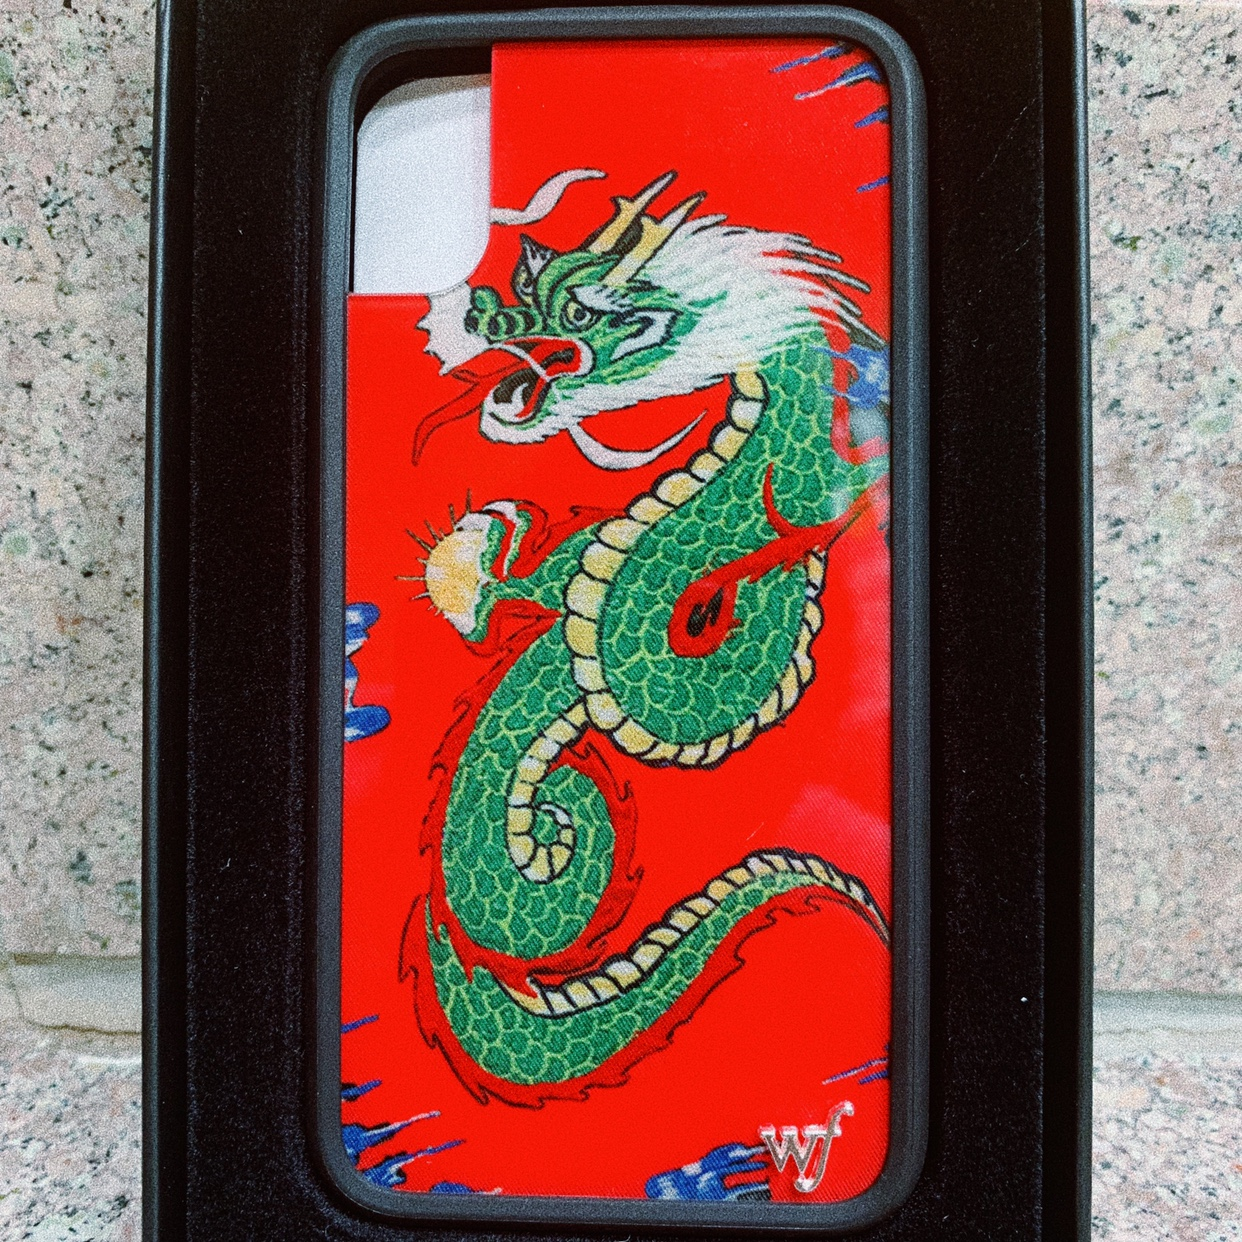 finest selection 00e9e 10b87 Limited Edition Red Dragon Wildflower X/XS Case Mint... - Depop